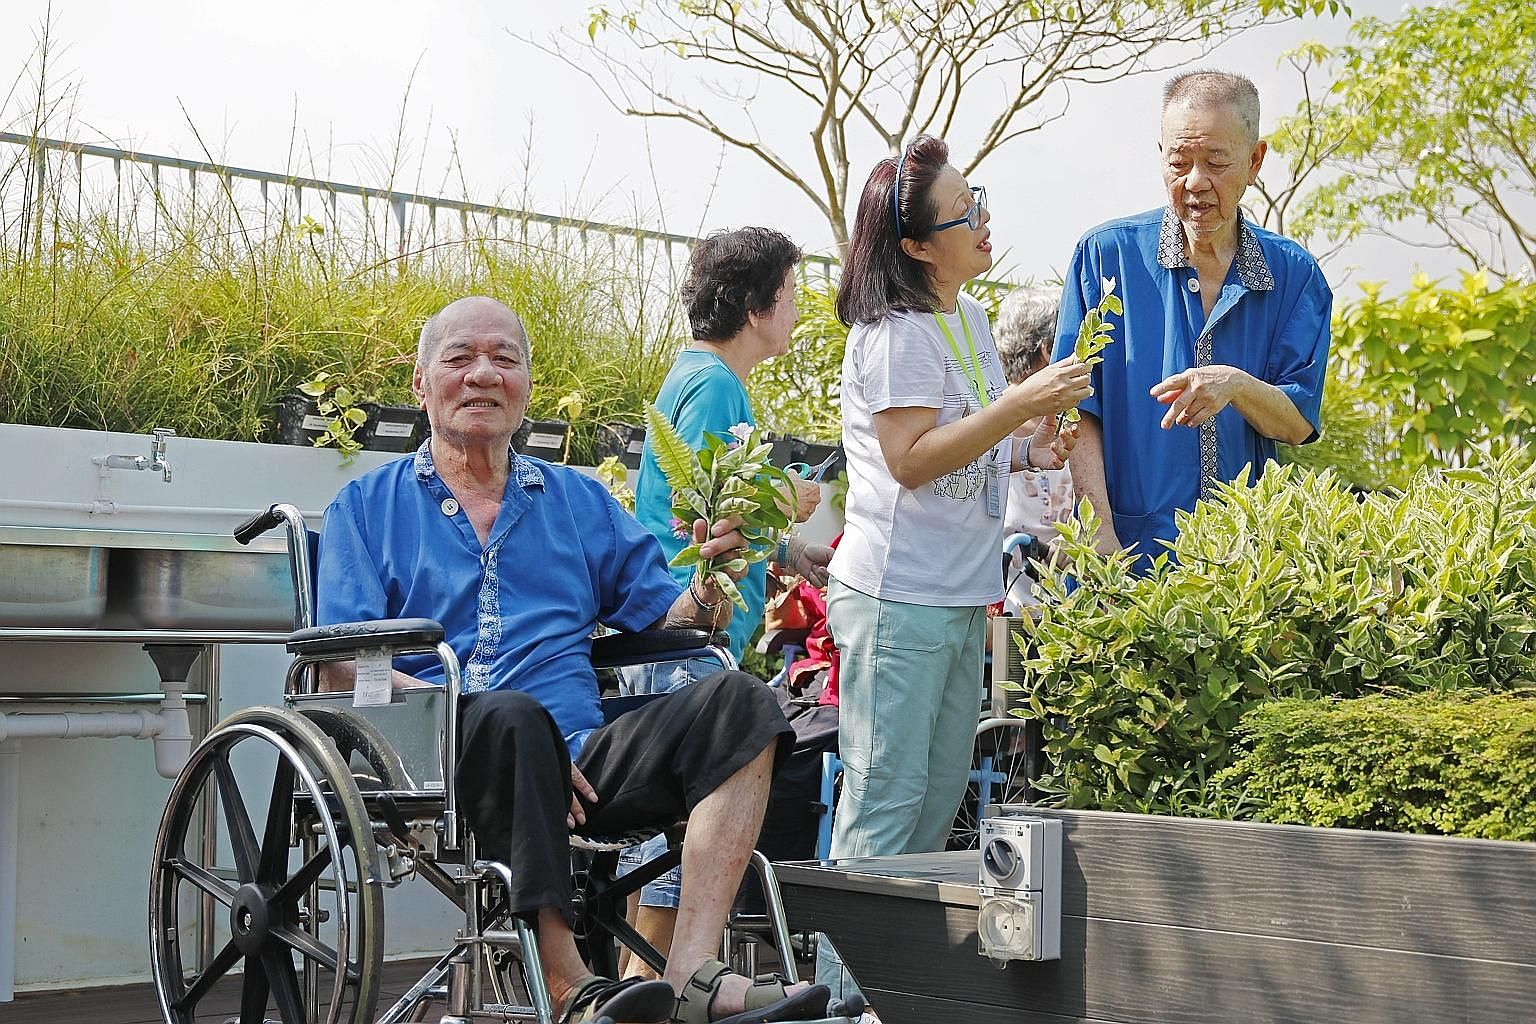 (From left) Mr Tan Soo Siam, 72, with volunteers Ke Sau Keau (side view), 73, and Connie Ho, 64, as well as fellow resident Quek Chin Long, 78, at the rooftop garden of the NTUC Health nursing home in Jurong West. It is the first garden in a nursing